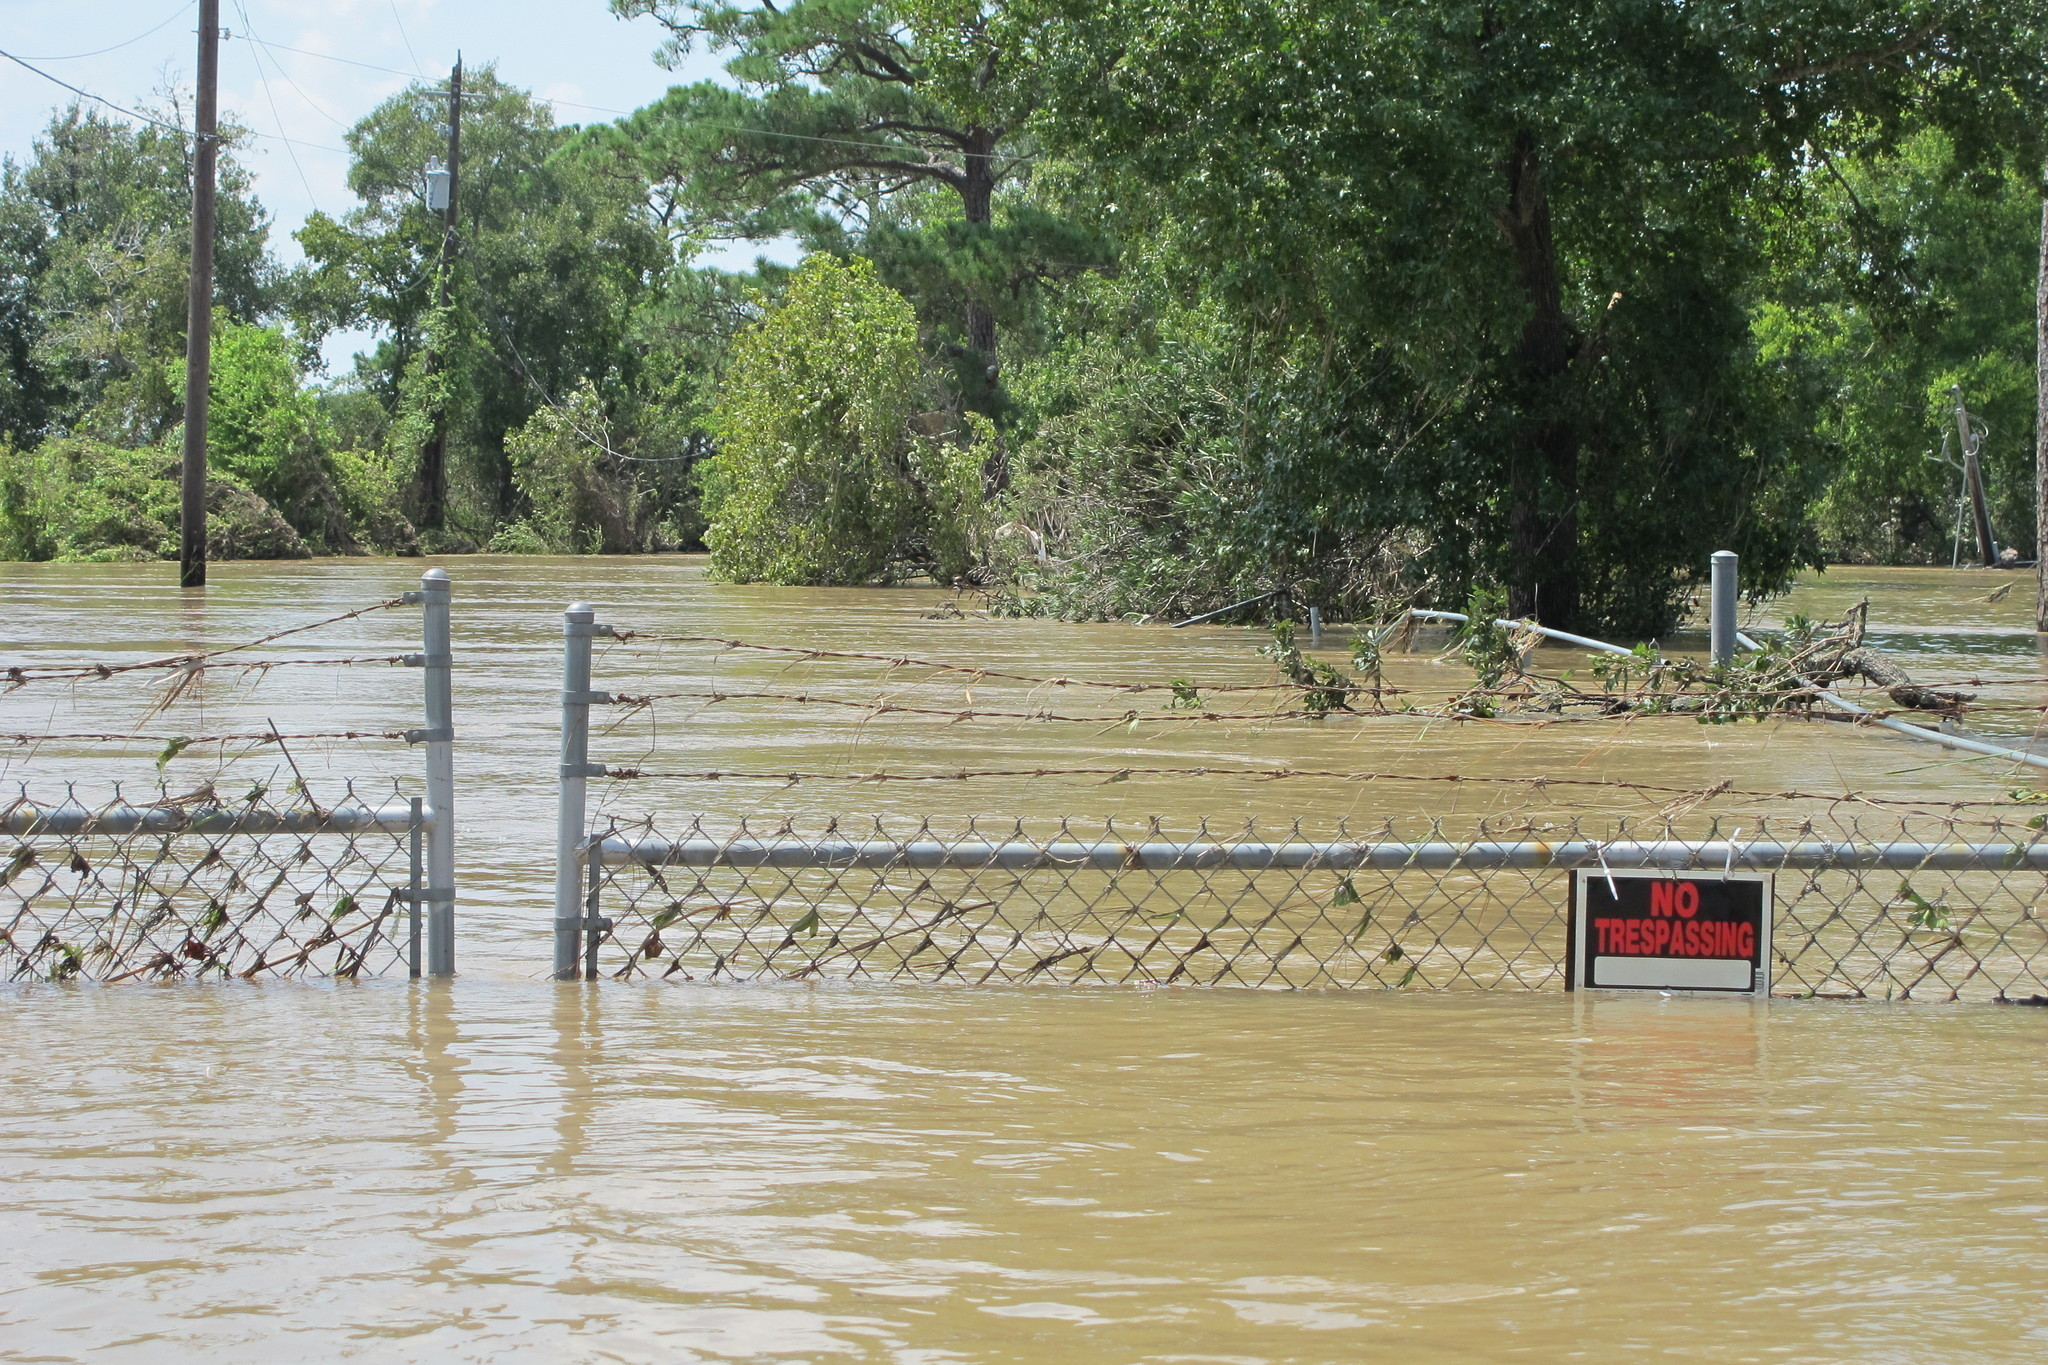 Toxic waste sites in Texas swamped by Harvey's floodwaters; EPA not on scene